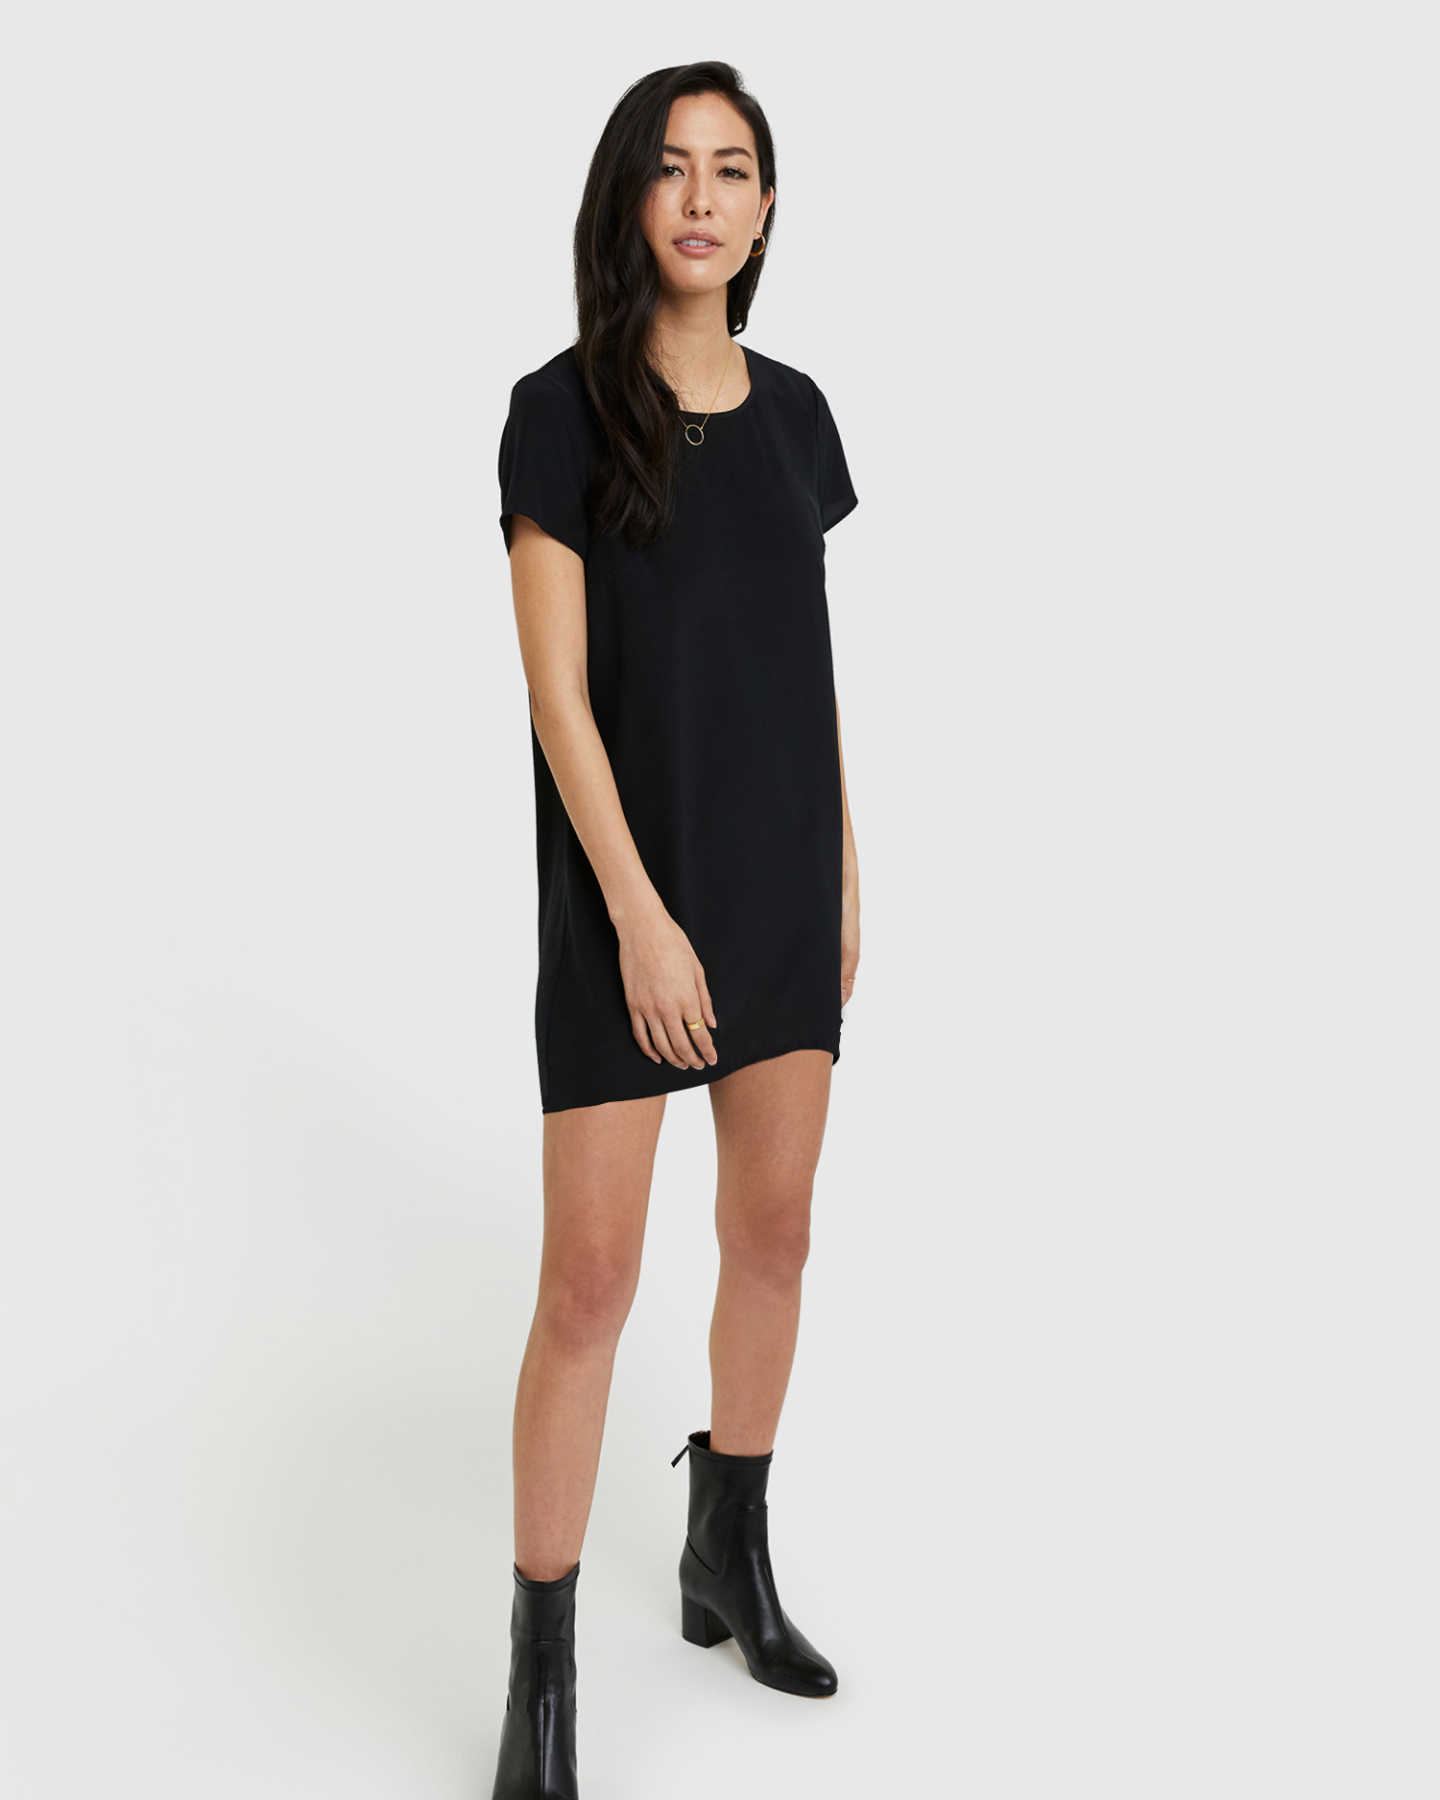 Washable Stretch Silk Tee Dress - Black - 0